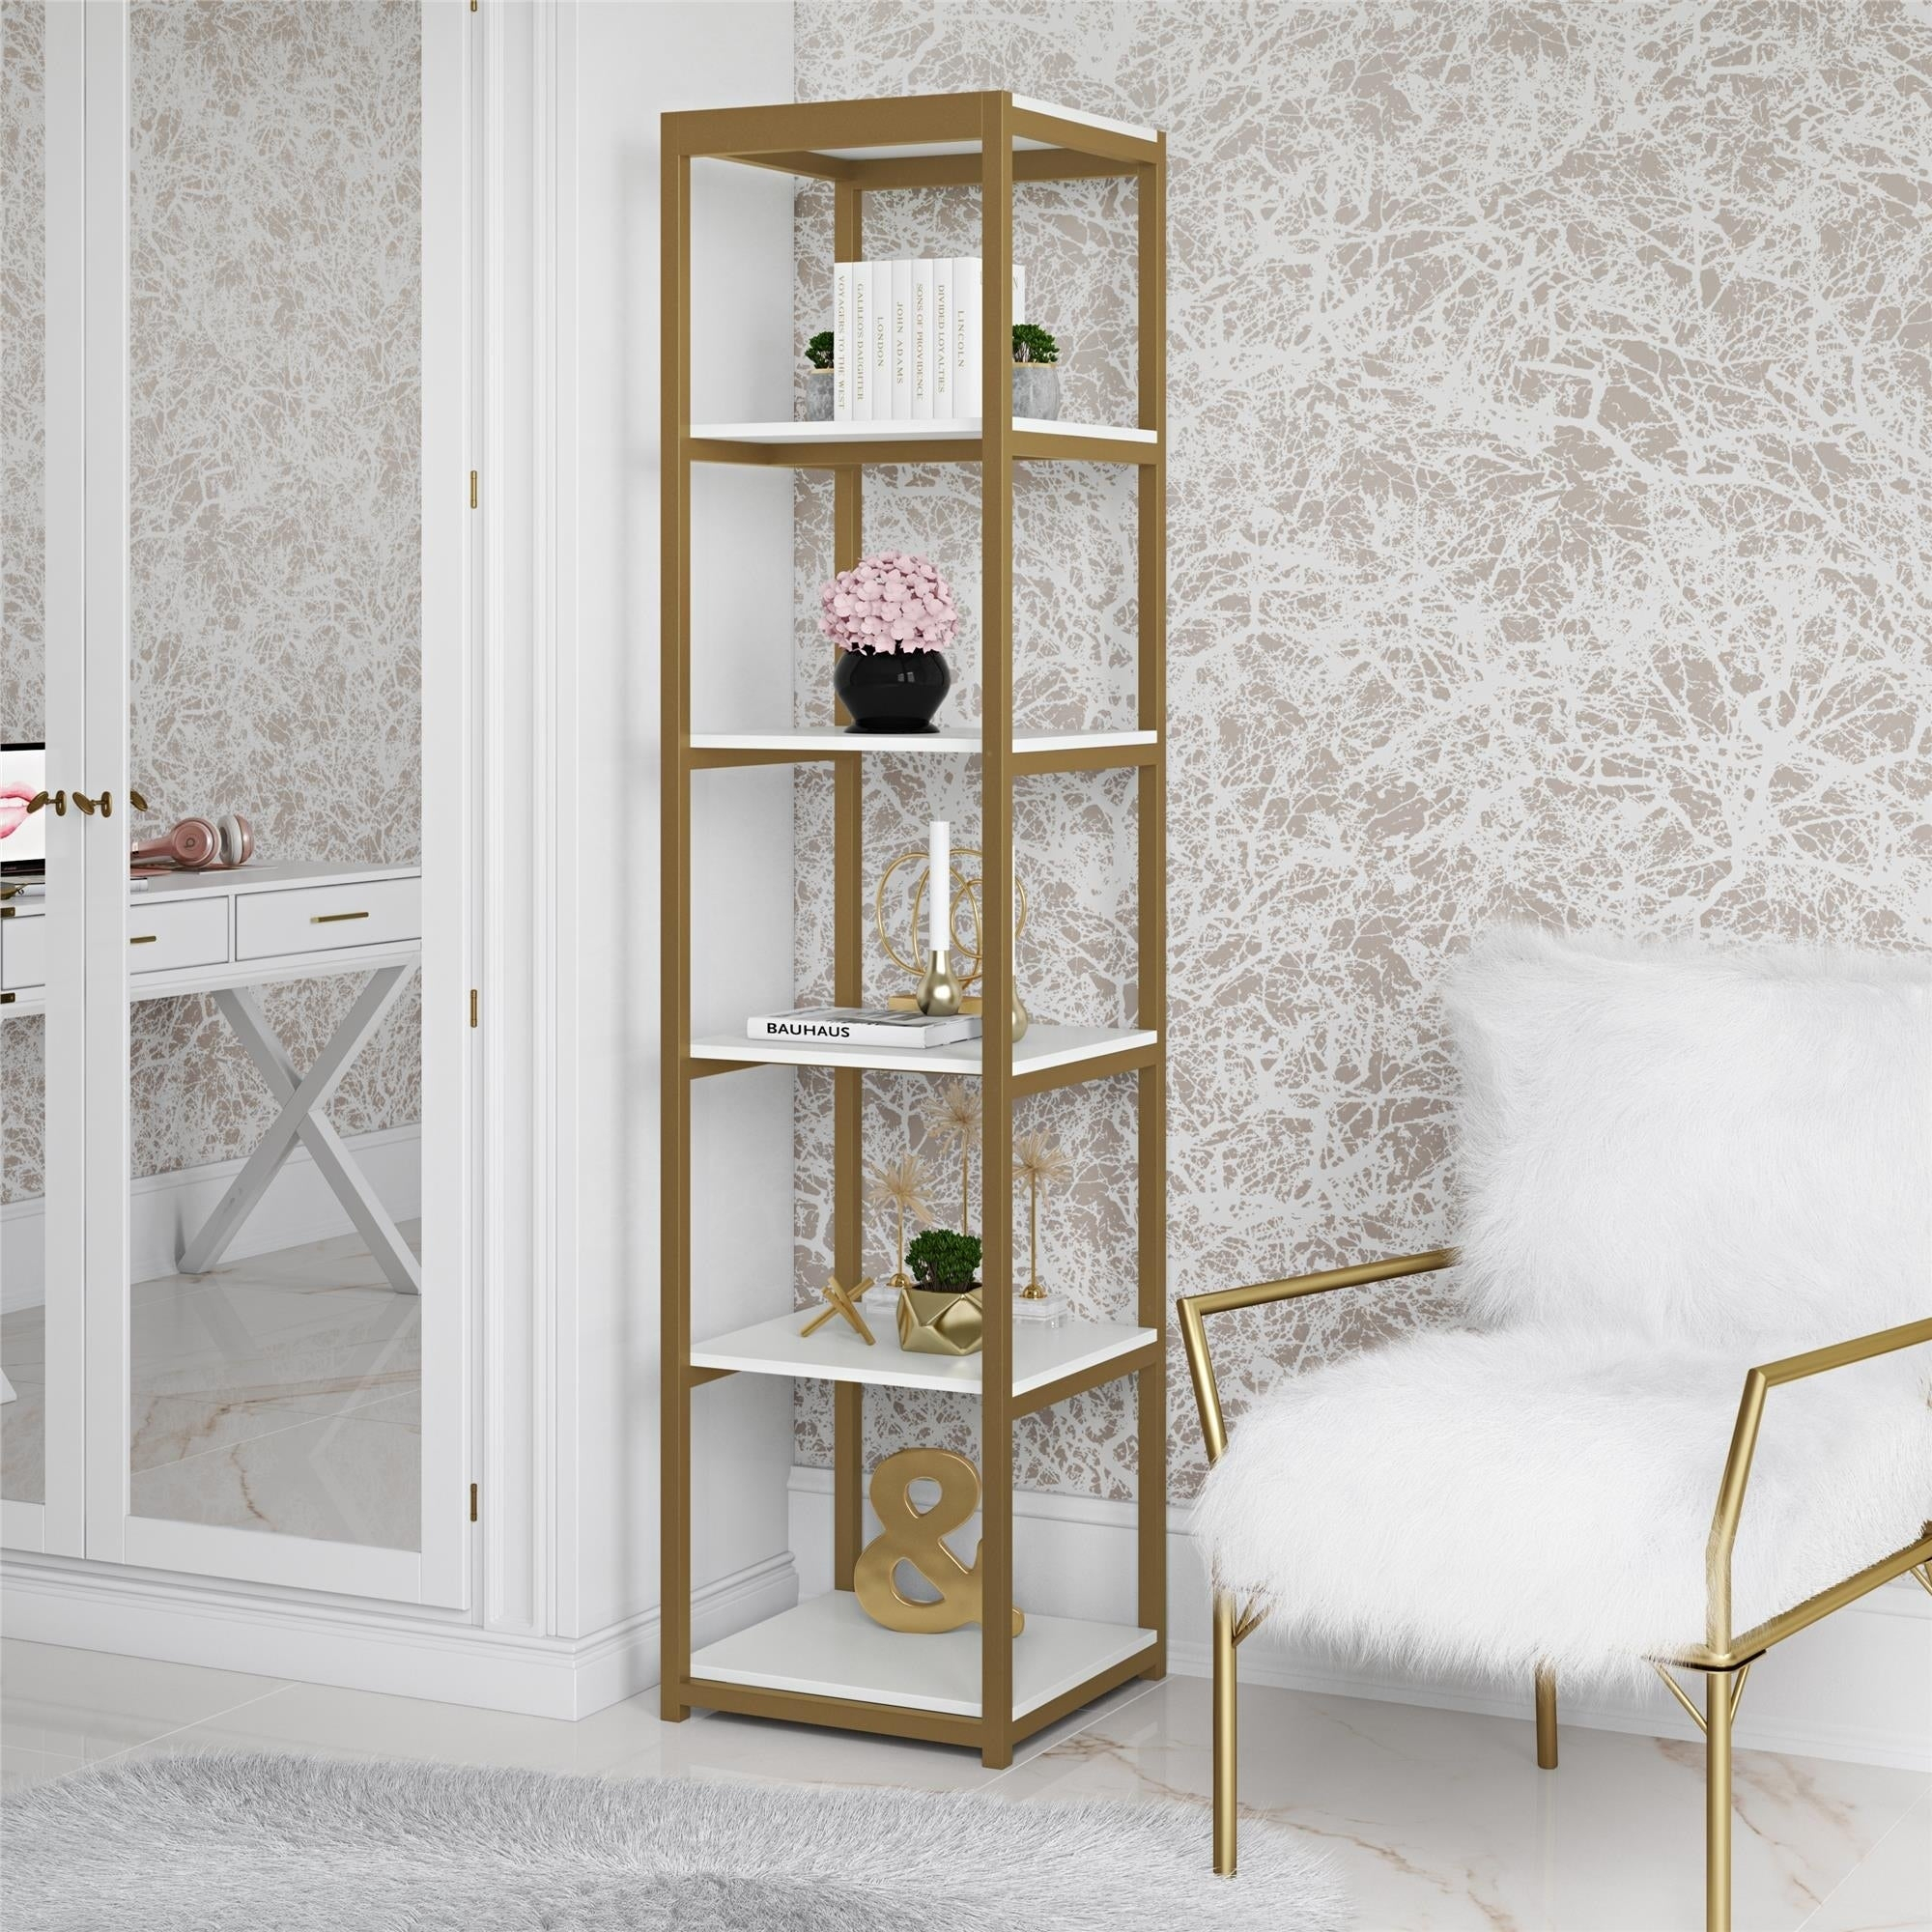 Cosmoliving Billie White/goldtone Metal Bookcase Etagere intended for Metal Wall Decor by Cosmoliving (Image 3 of 30)